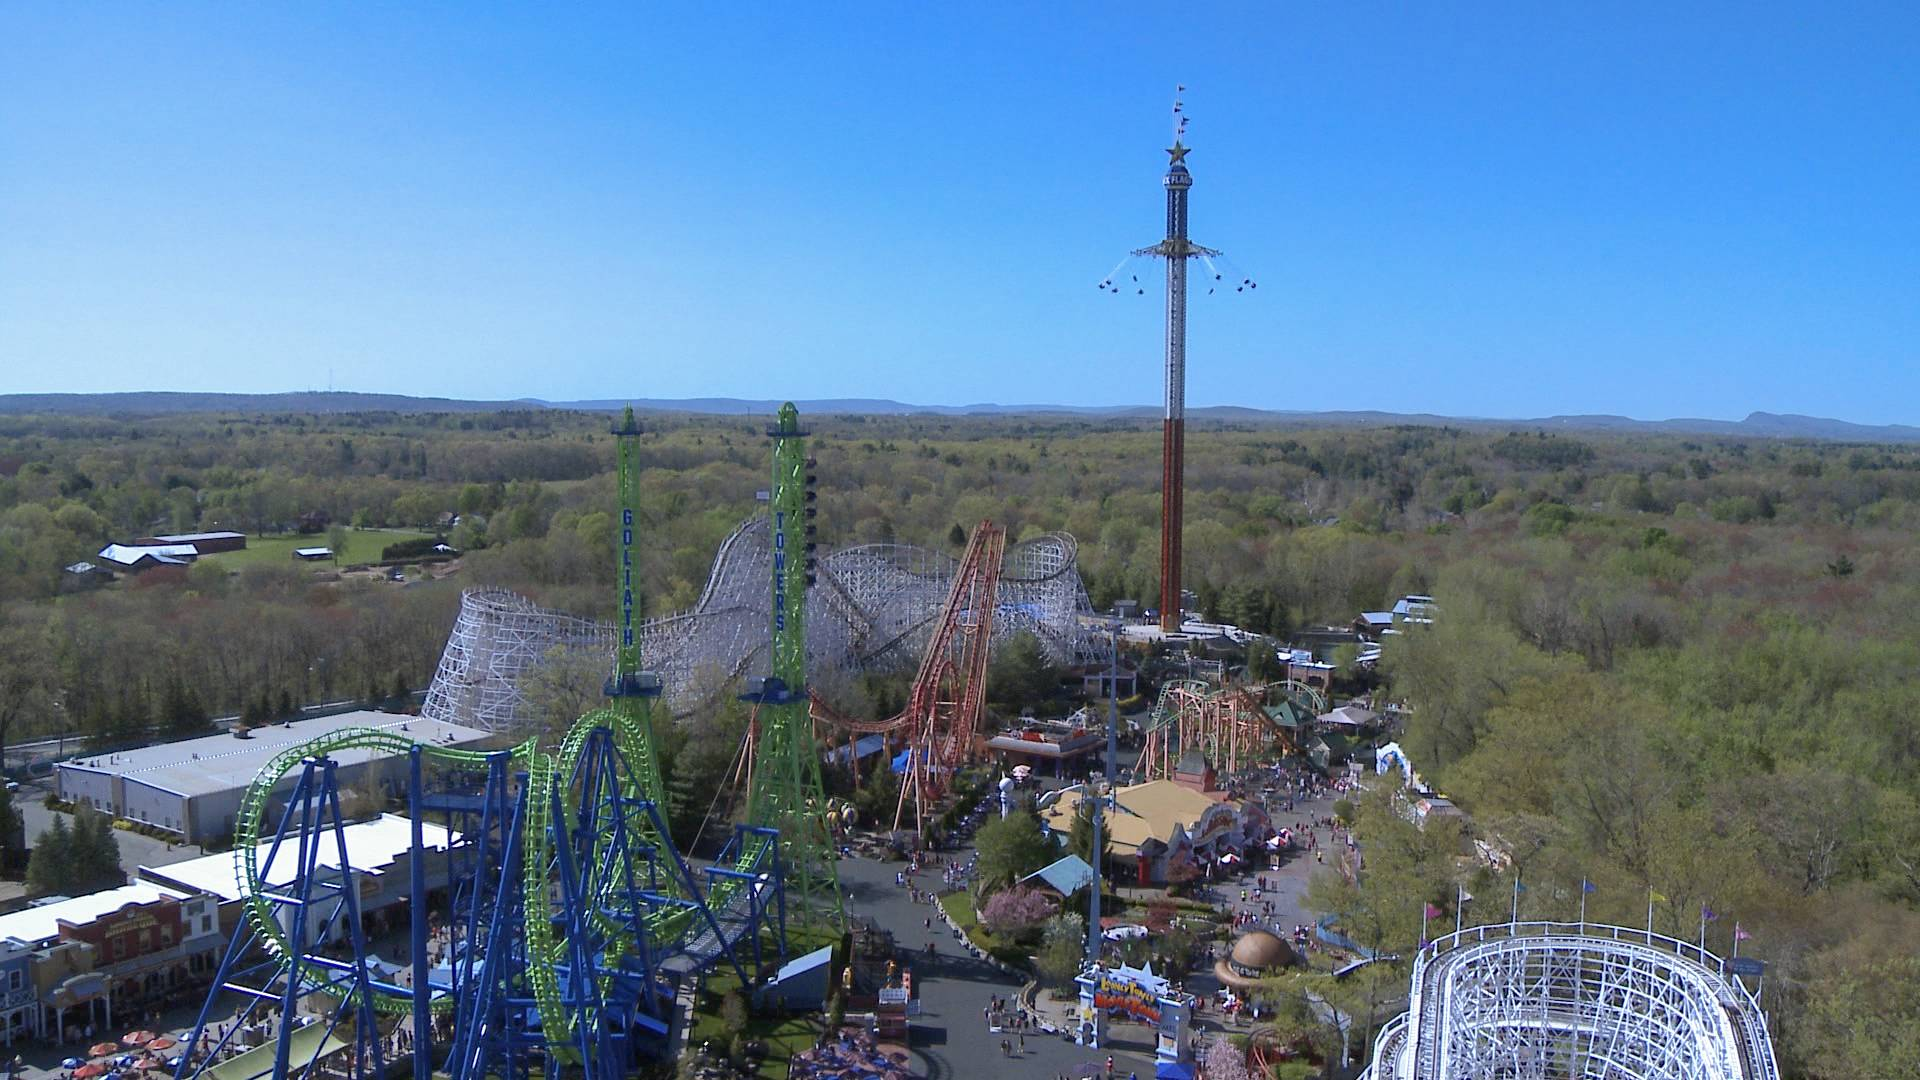 The New England SkyScreamer is the tallest swing ride at Six Flags New England in Agawam, Mass.